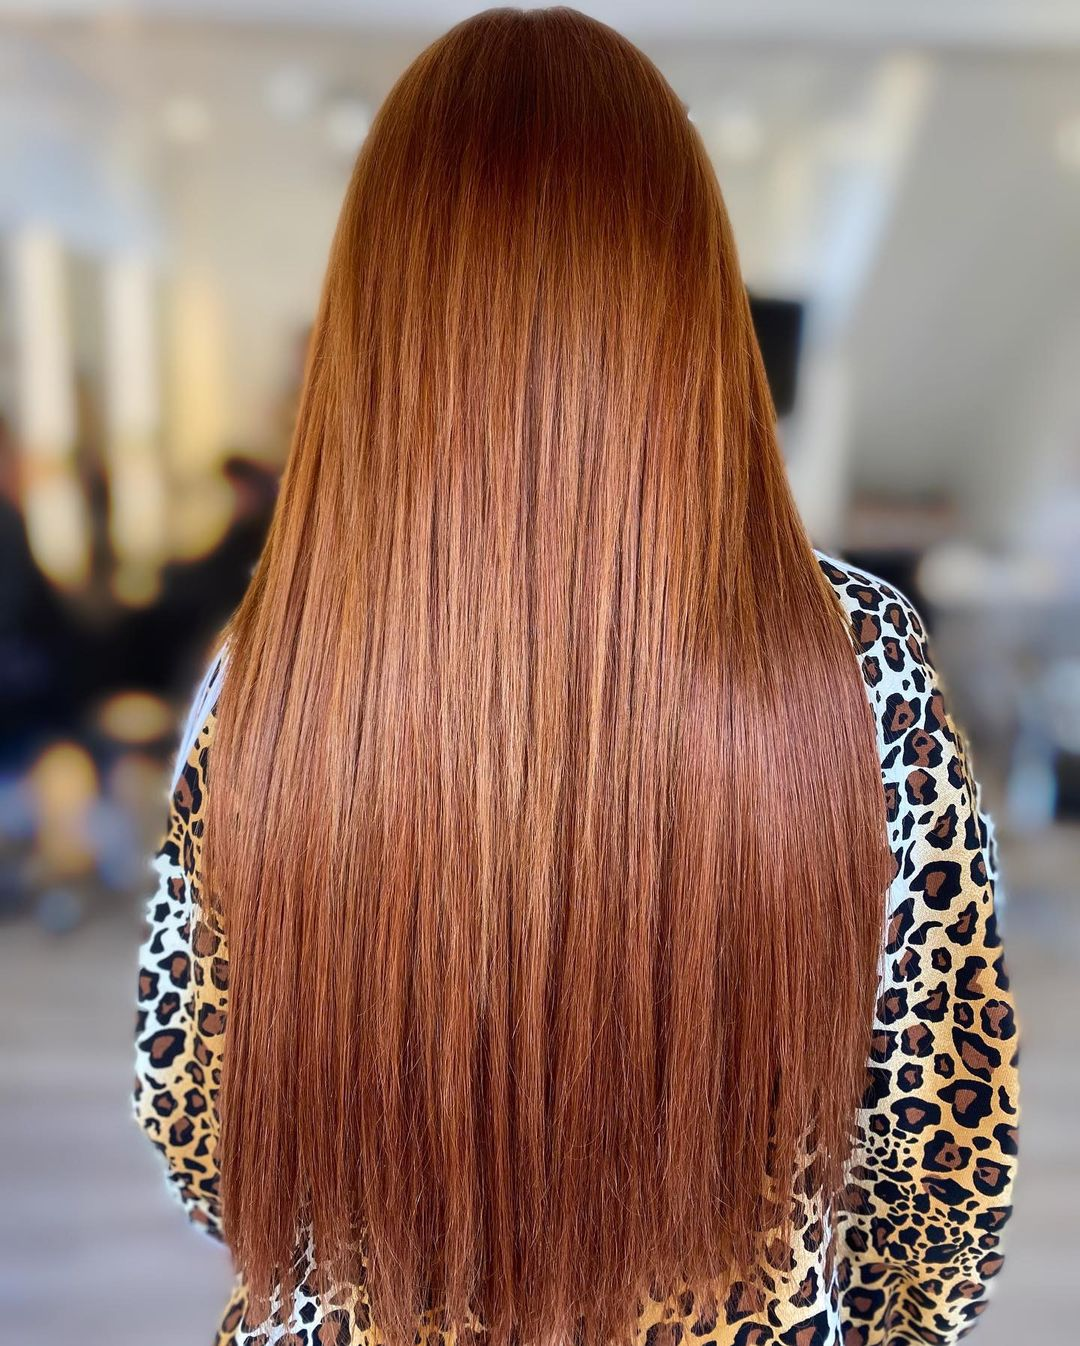 copper red hair colours at Amour hair salon in Salford